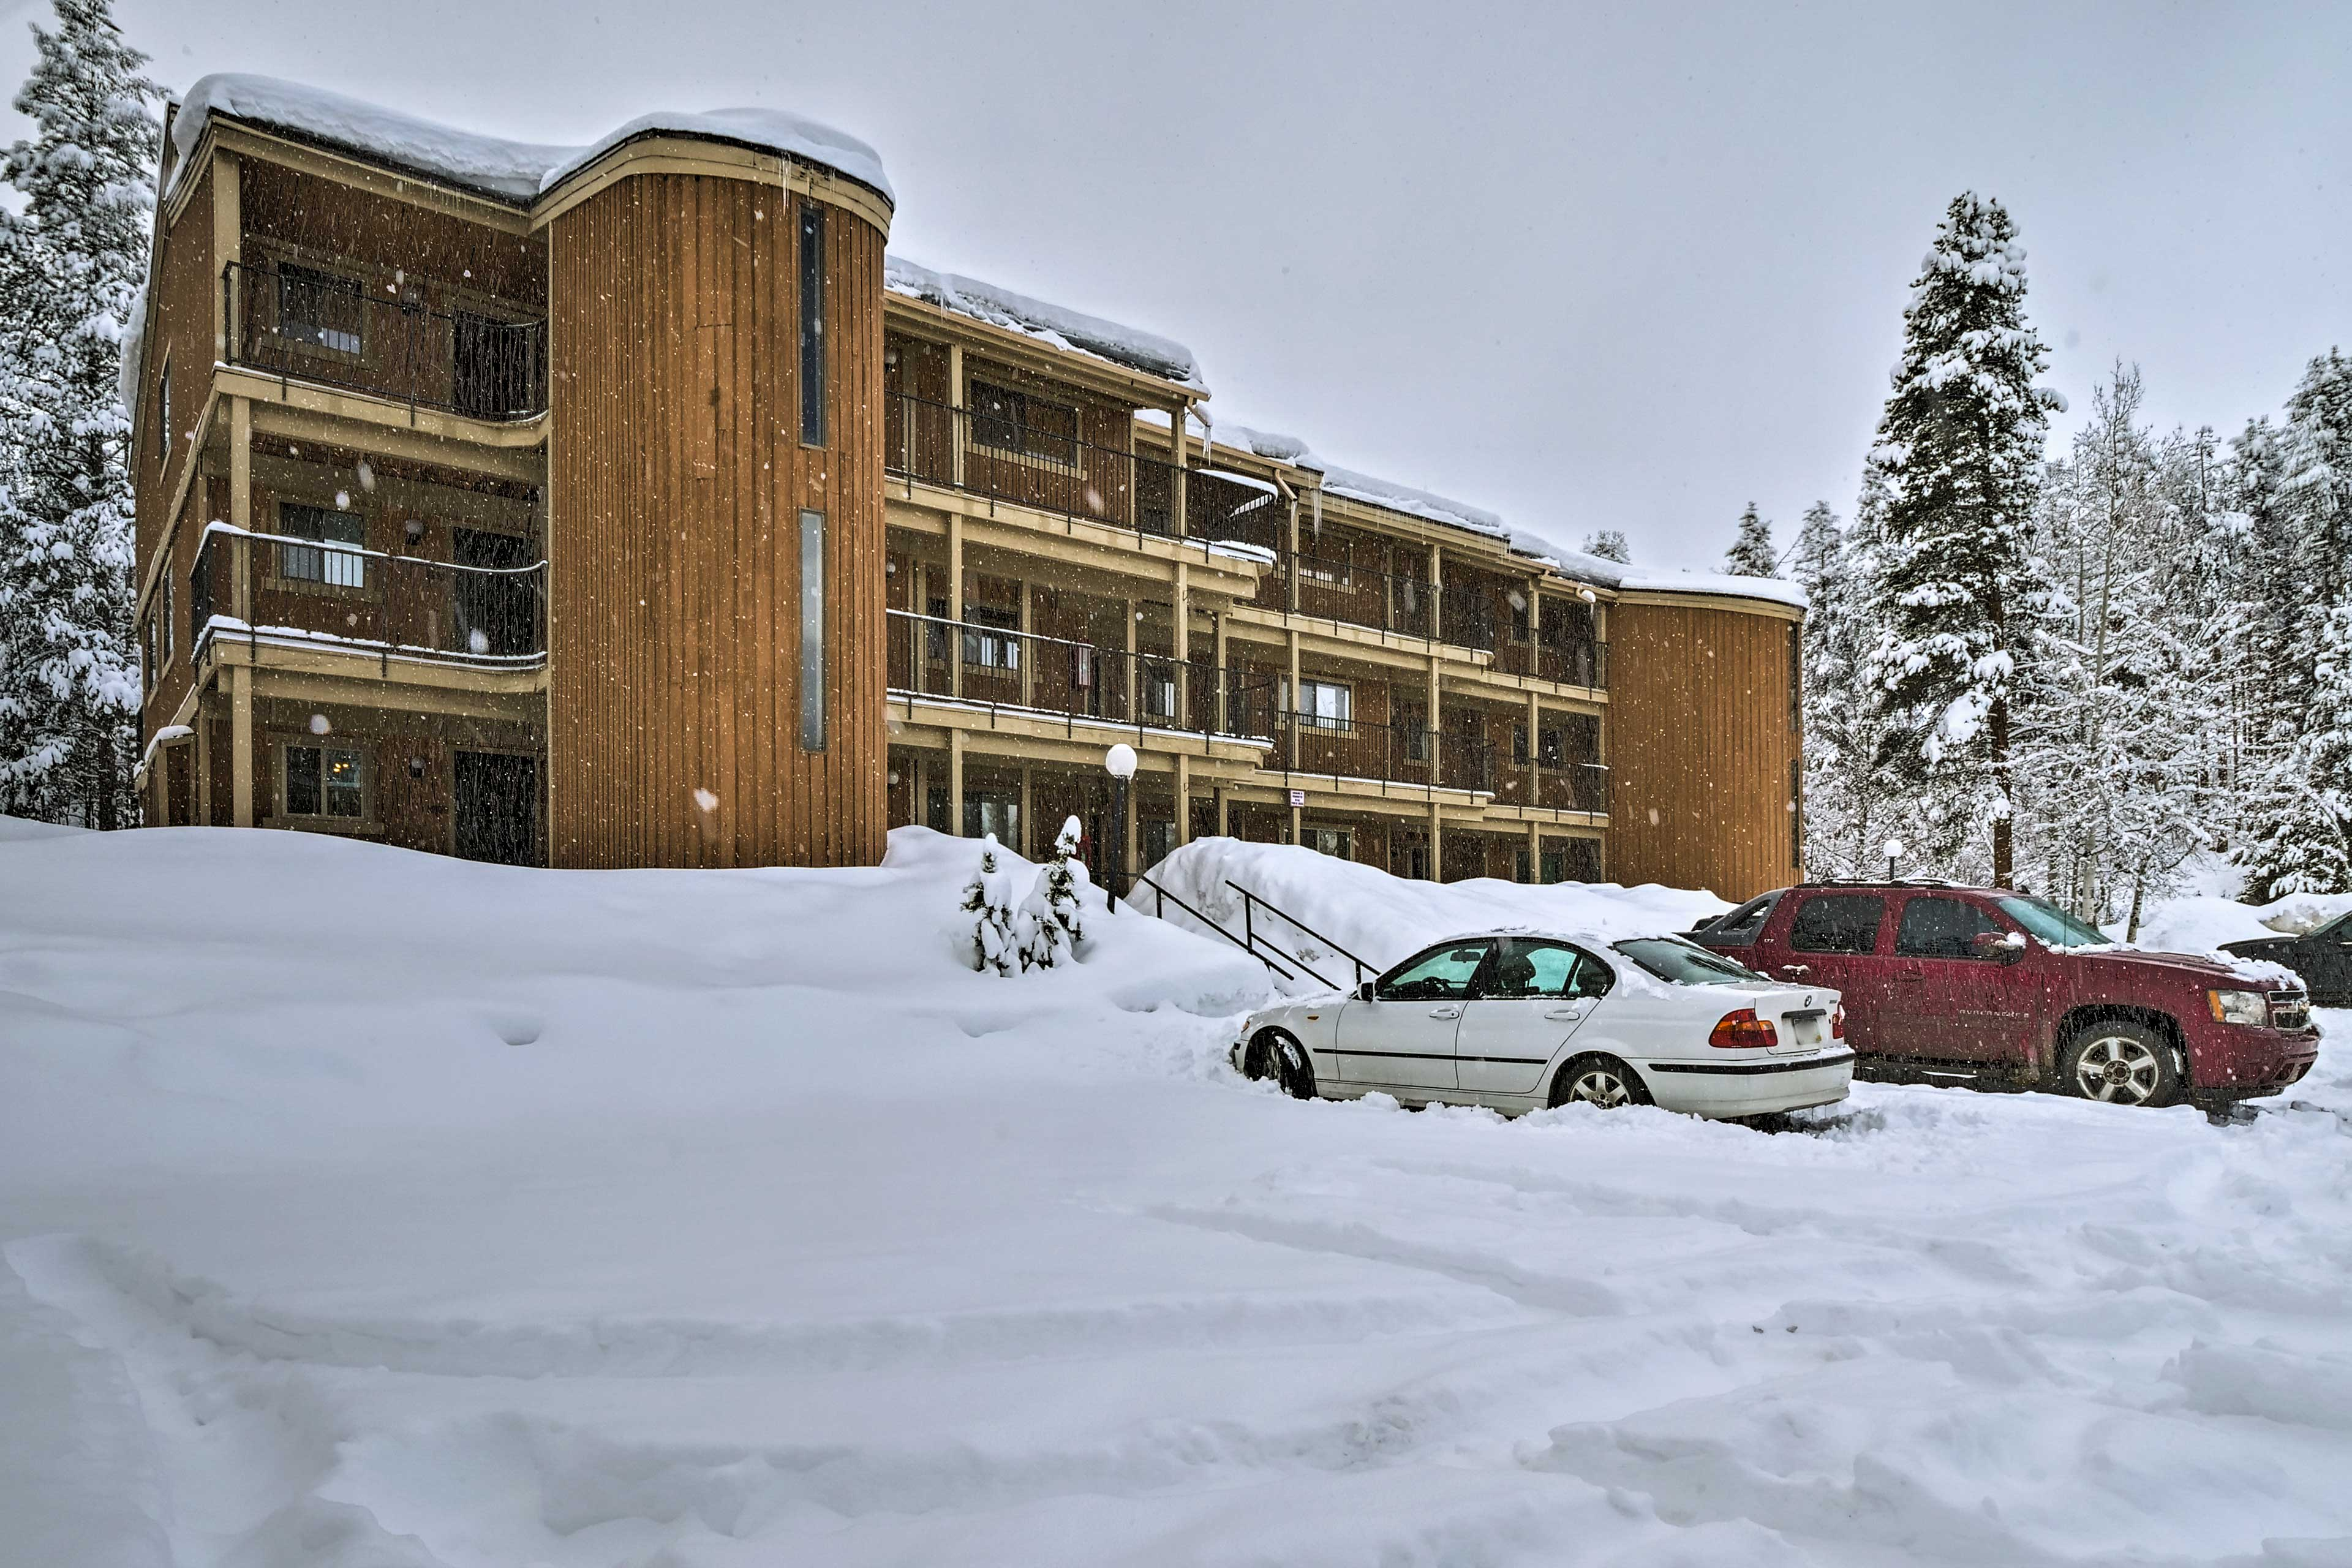 You'll be close to Winter Park Ski Resort and downtown activities.